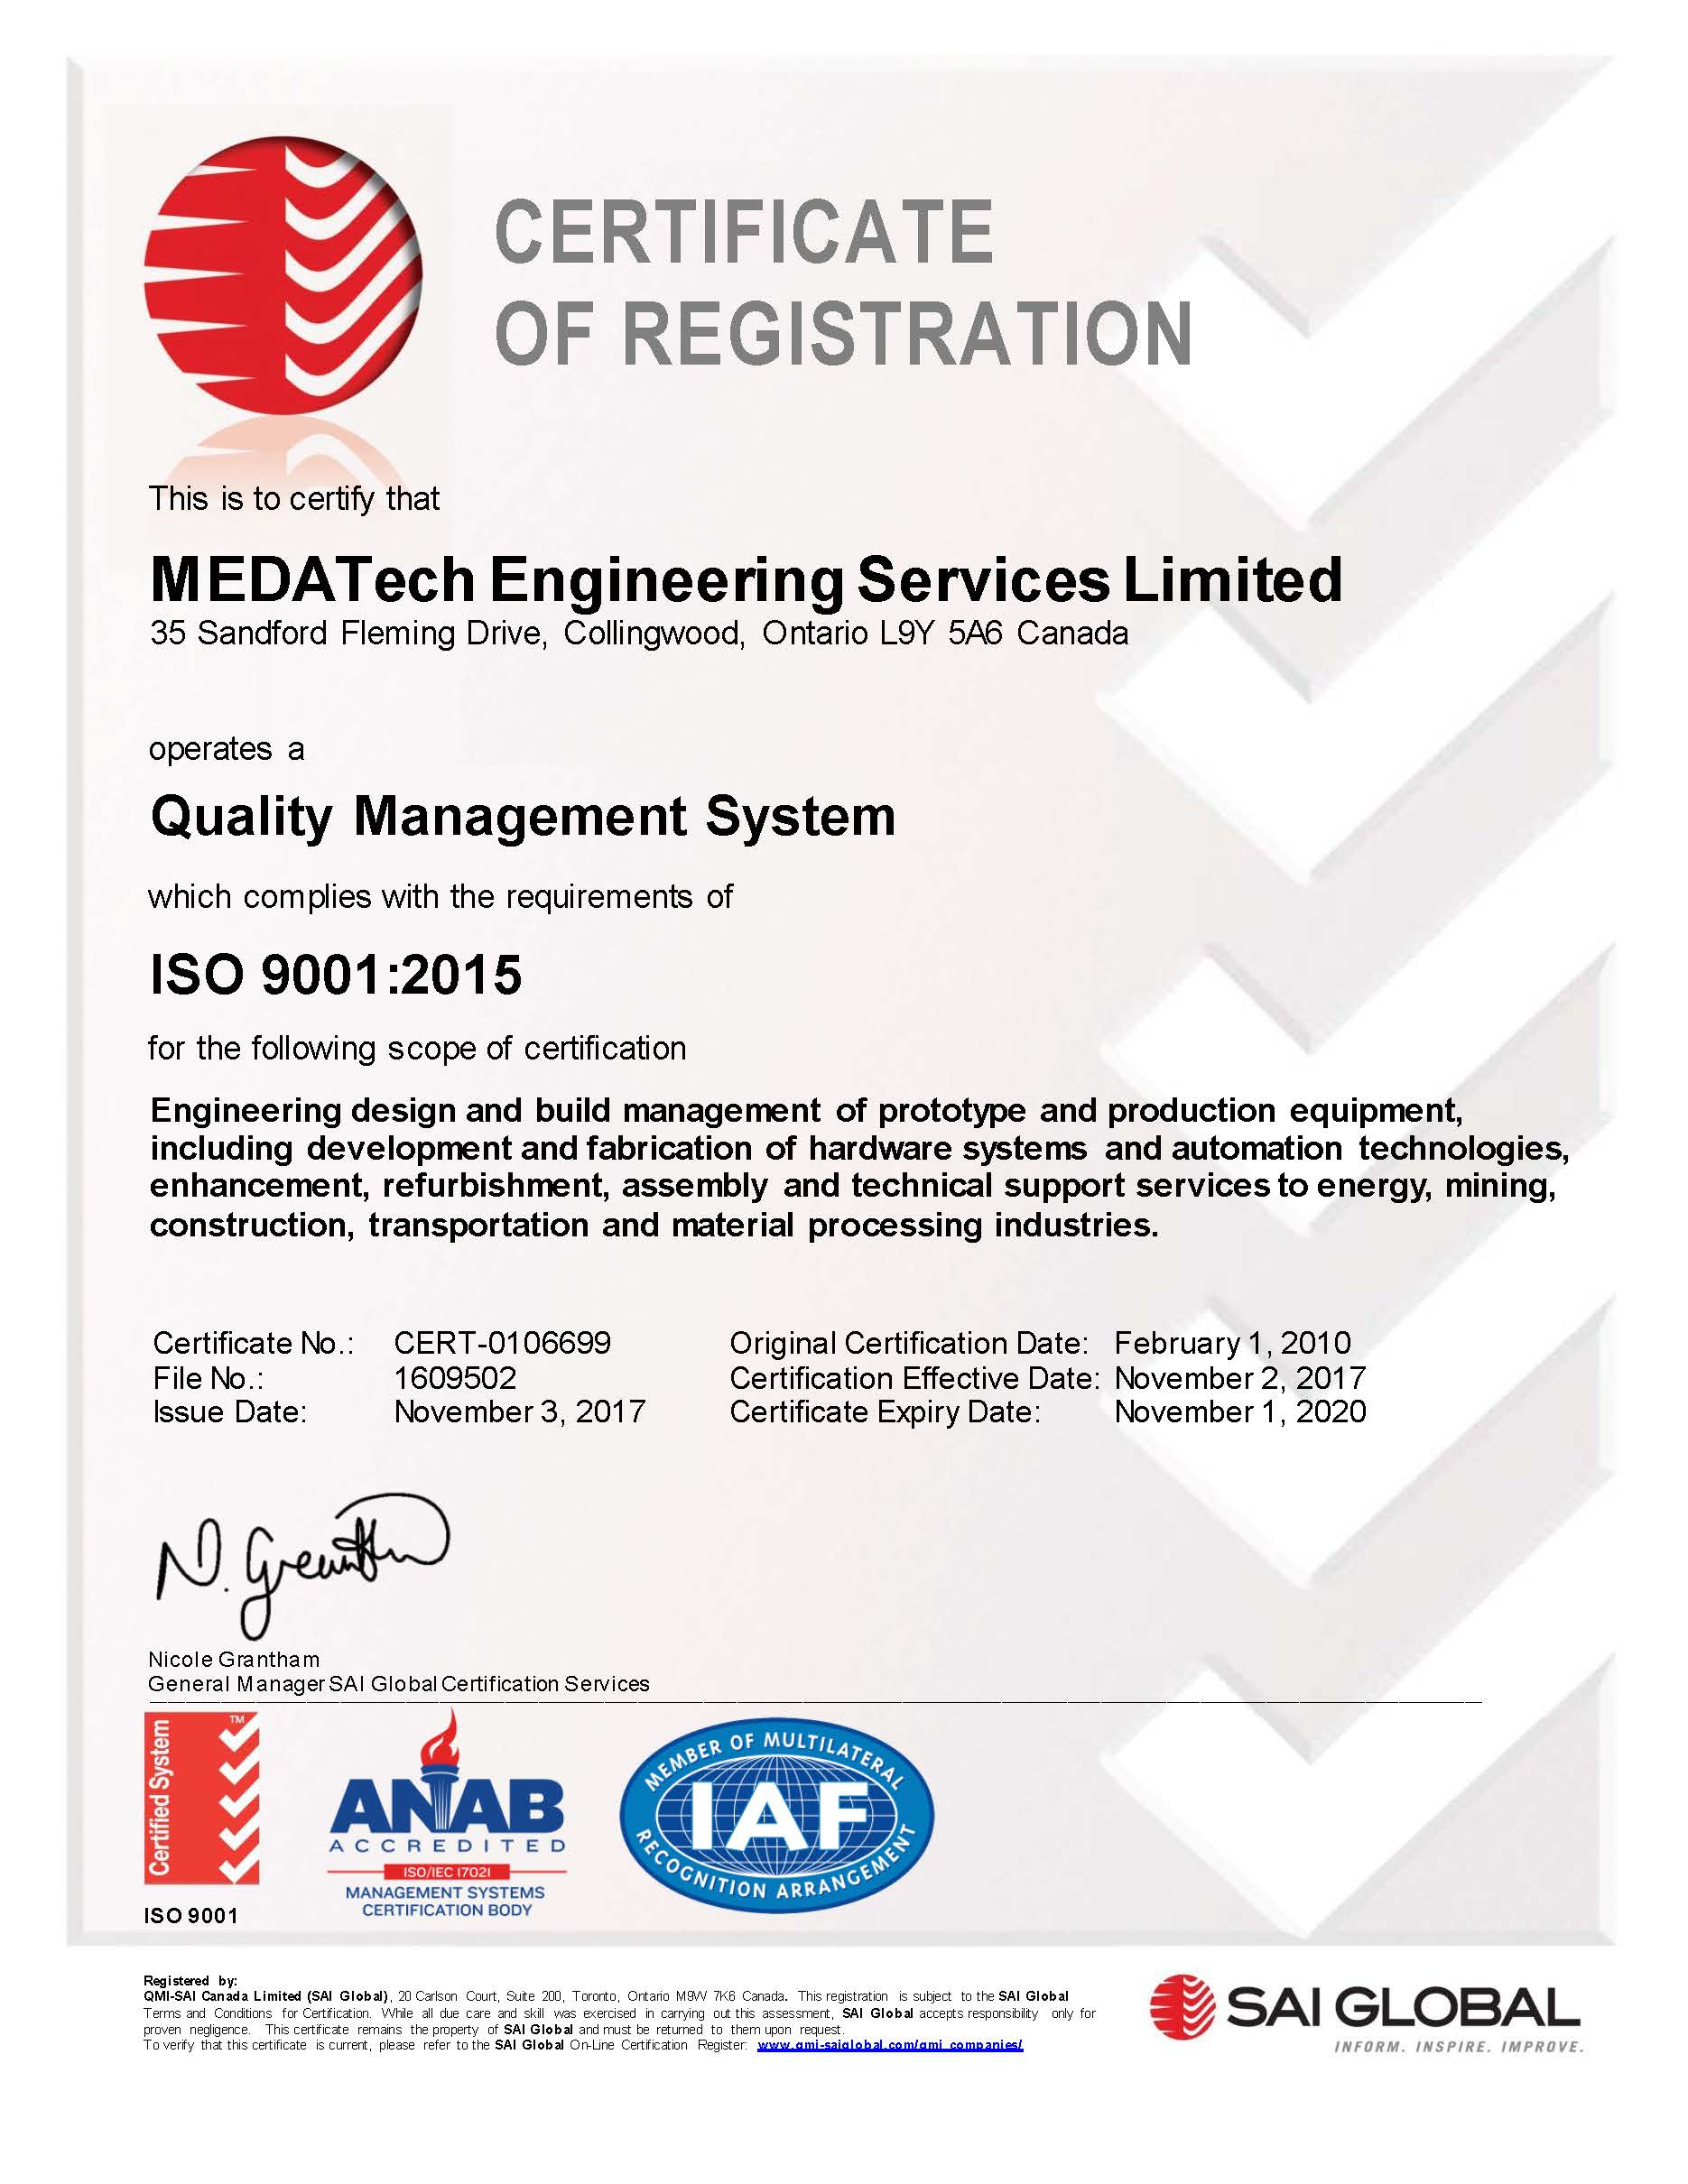 MEDATech ISO 9001-2015 Cert of Registration - 2020 11 01